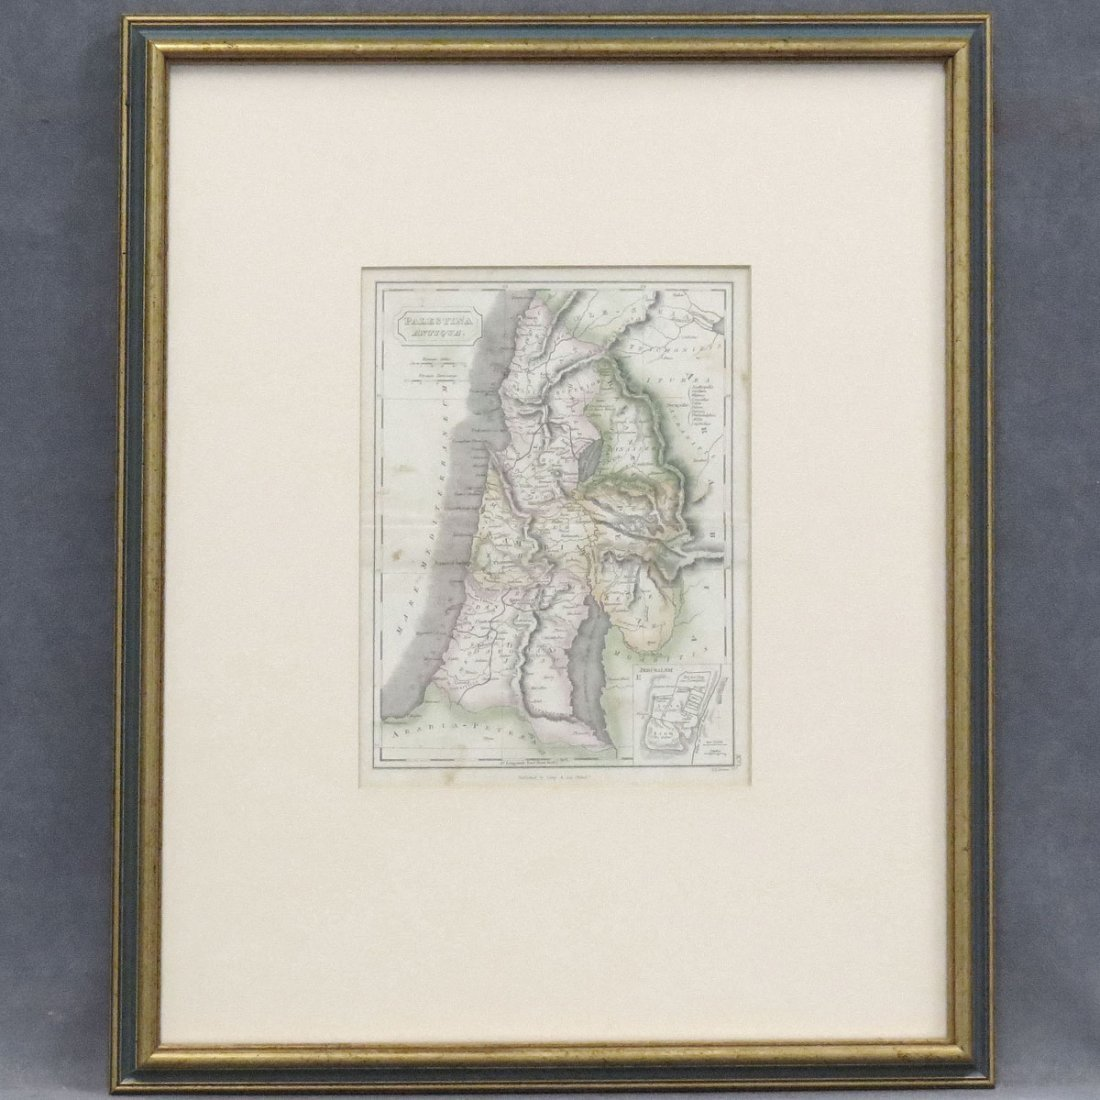 HAND COLORED ENGRAVED MAP OF PALESTINE